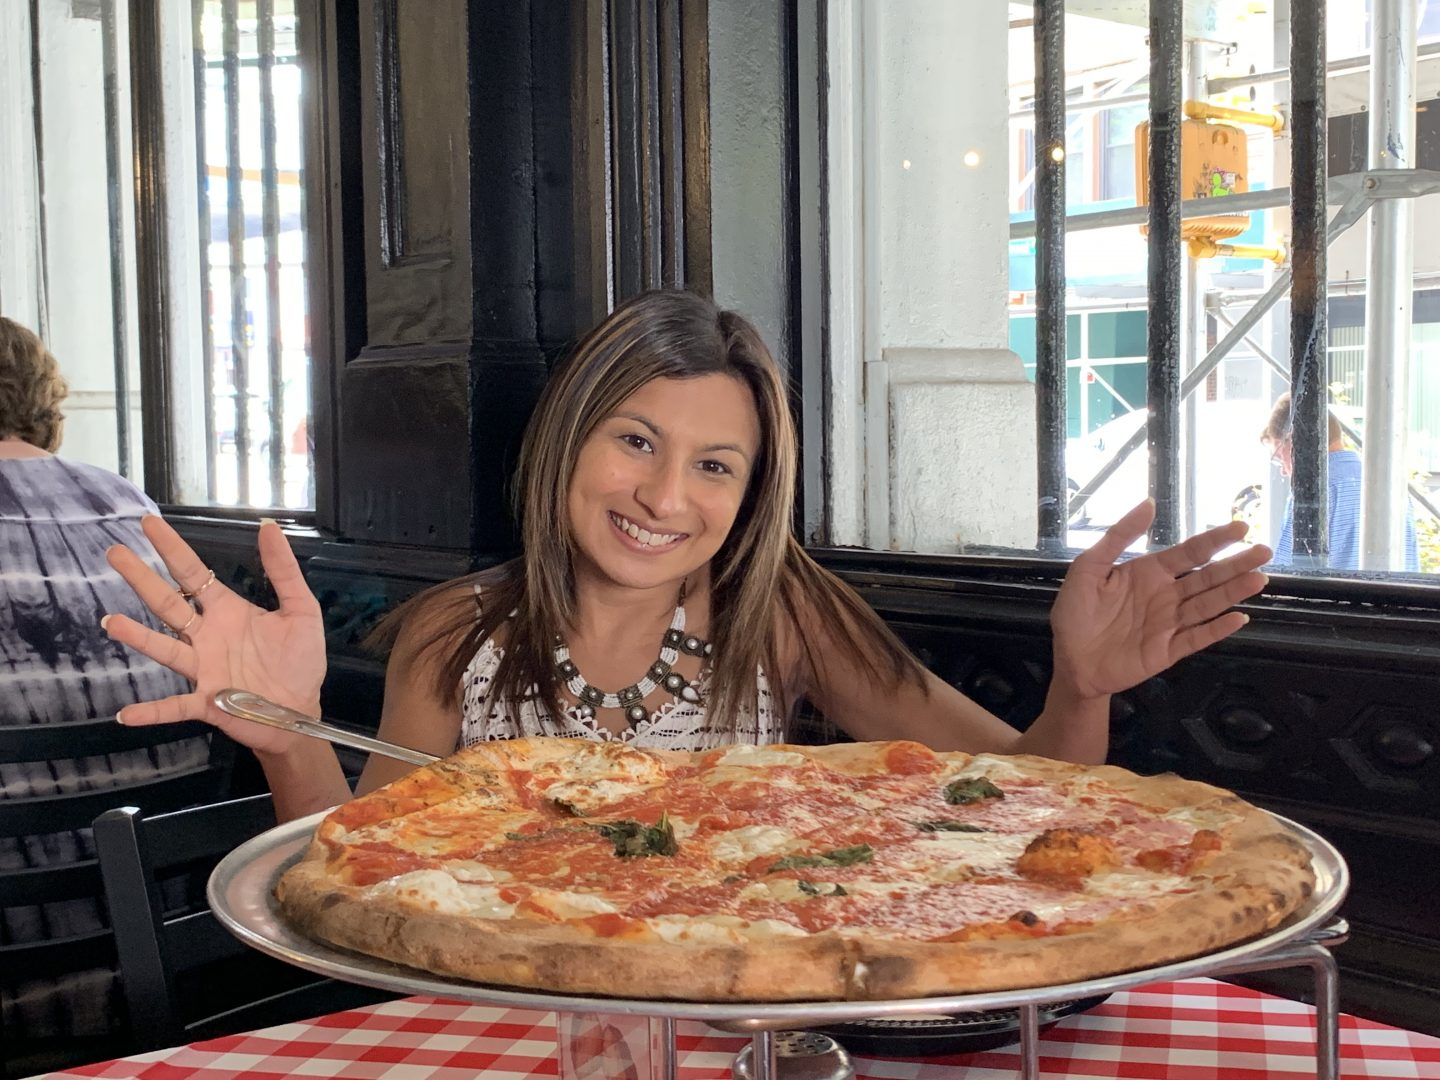 'A slice of Brooklyn Pizza Tour' – the best way to experience Brooklyn!